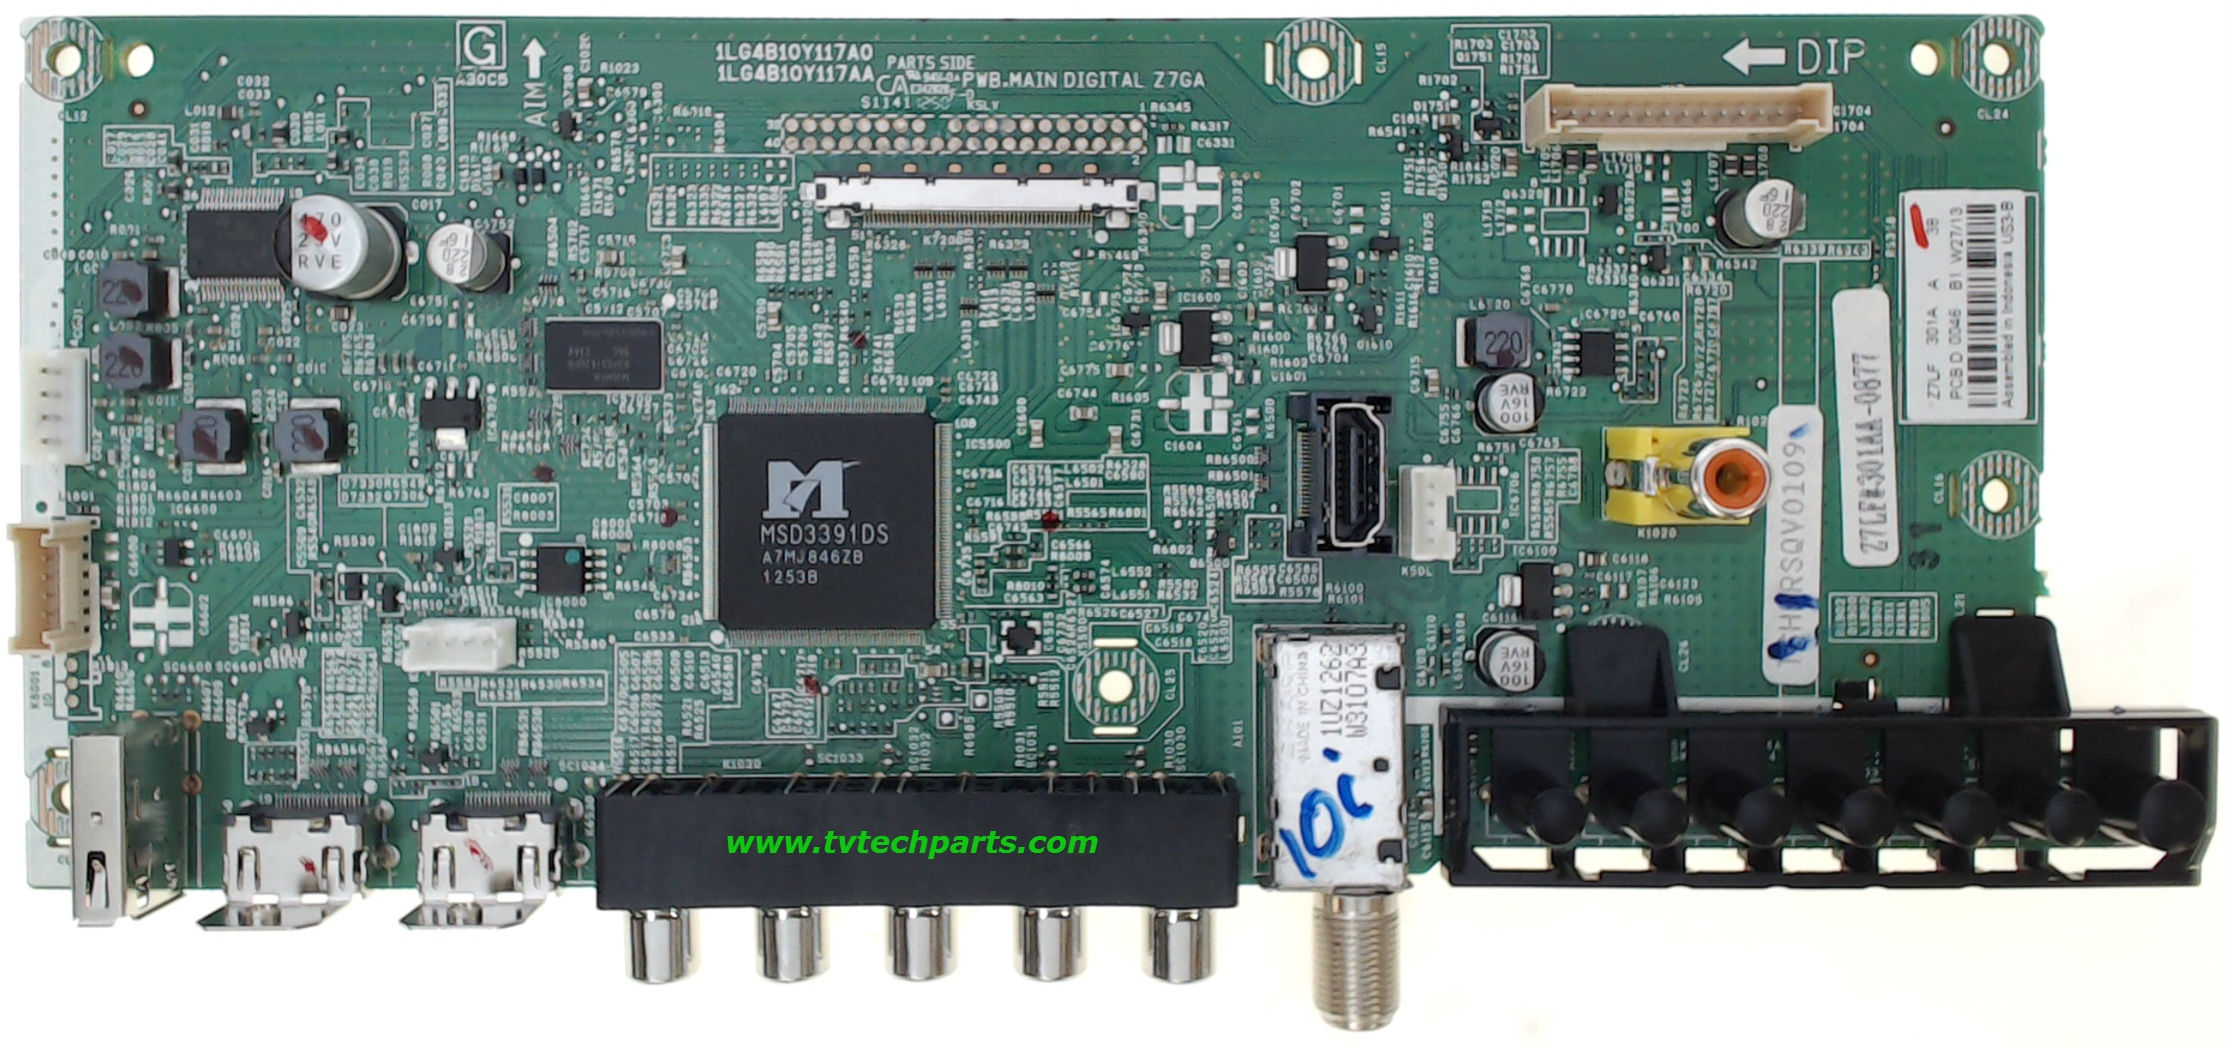 Sanyo Model DP42D23 Main Audio Video HDMI Tuner Board Part Number 1LG4B10Y117A0 Z7LF